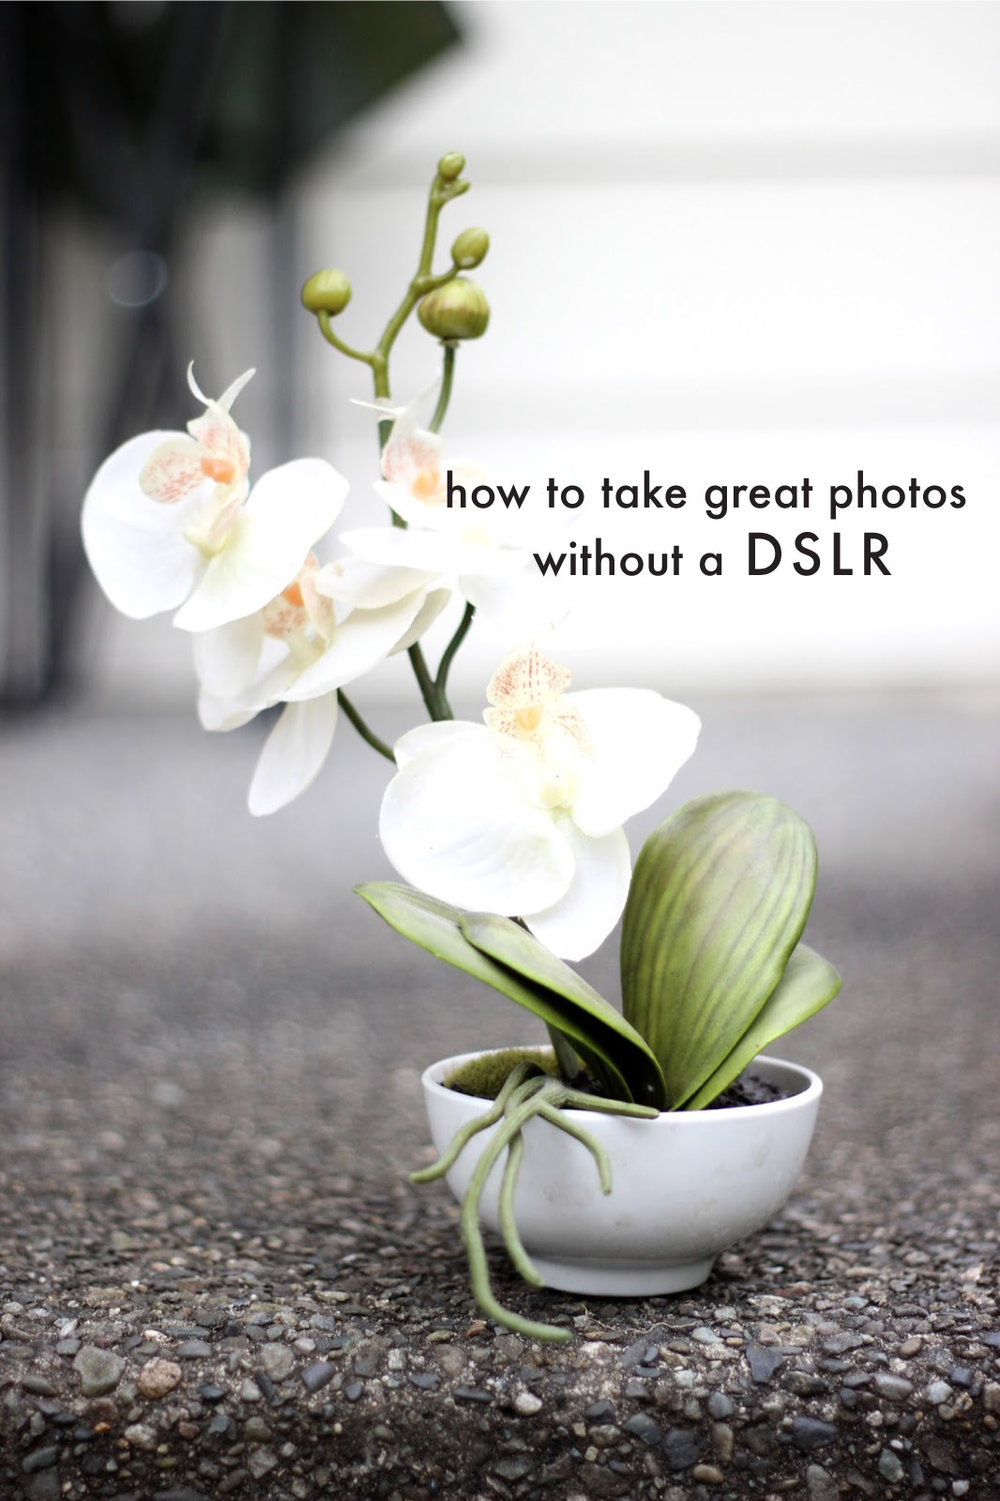 How-to-great-photos-without-DSLR2.jpg